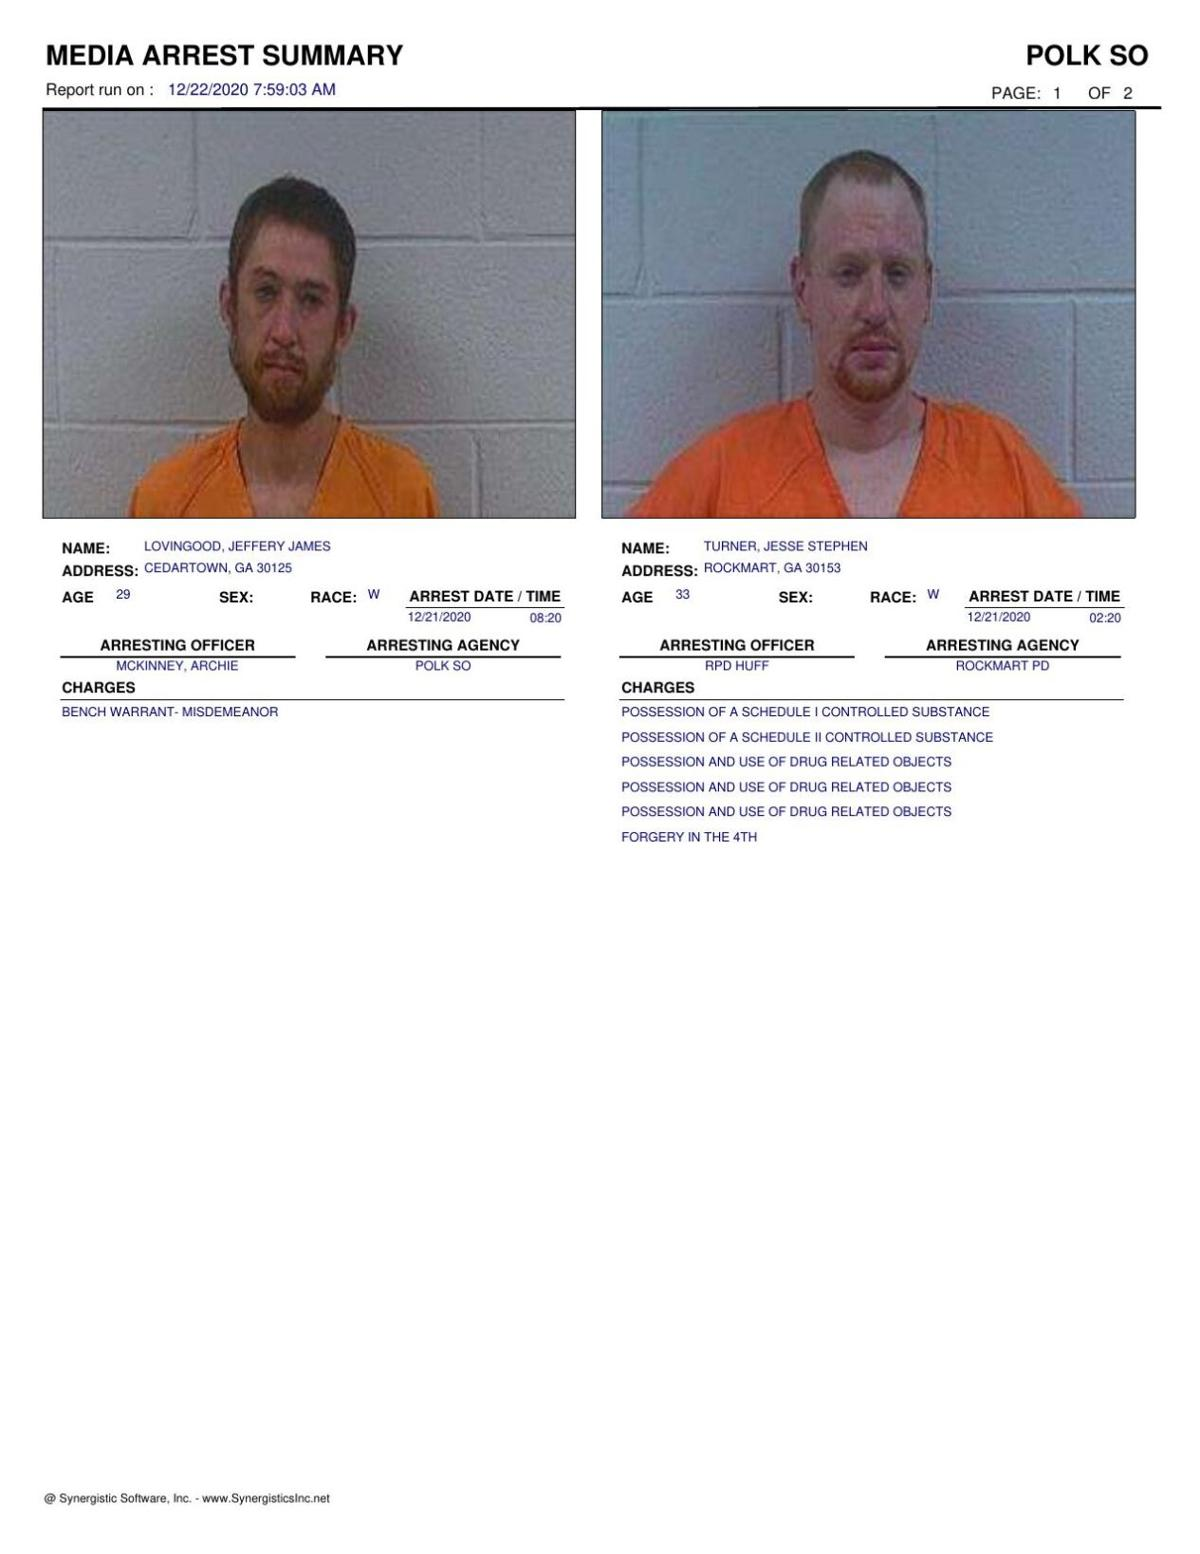 Polk County Jail Report for Tuesday, Dec. 22